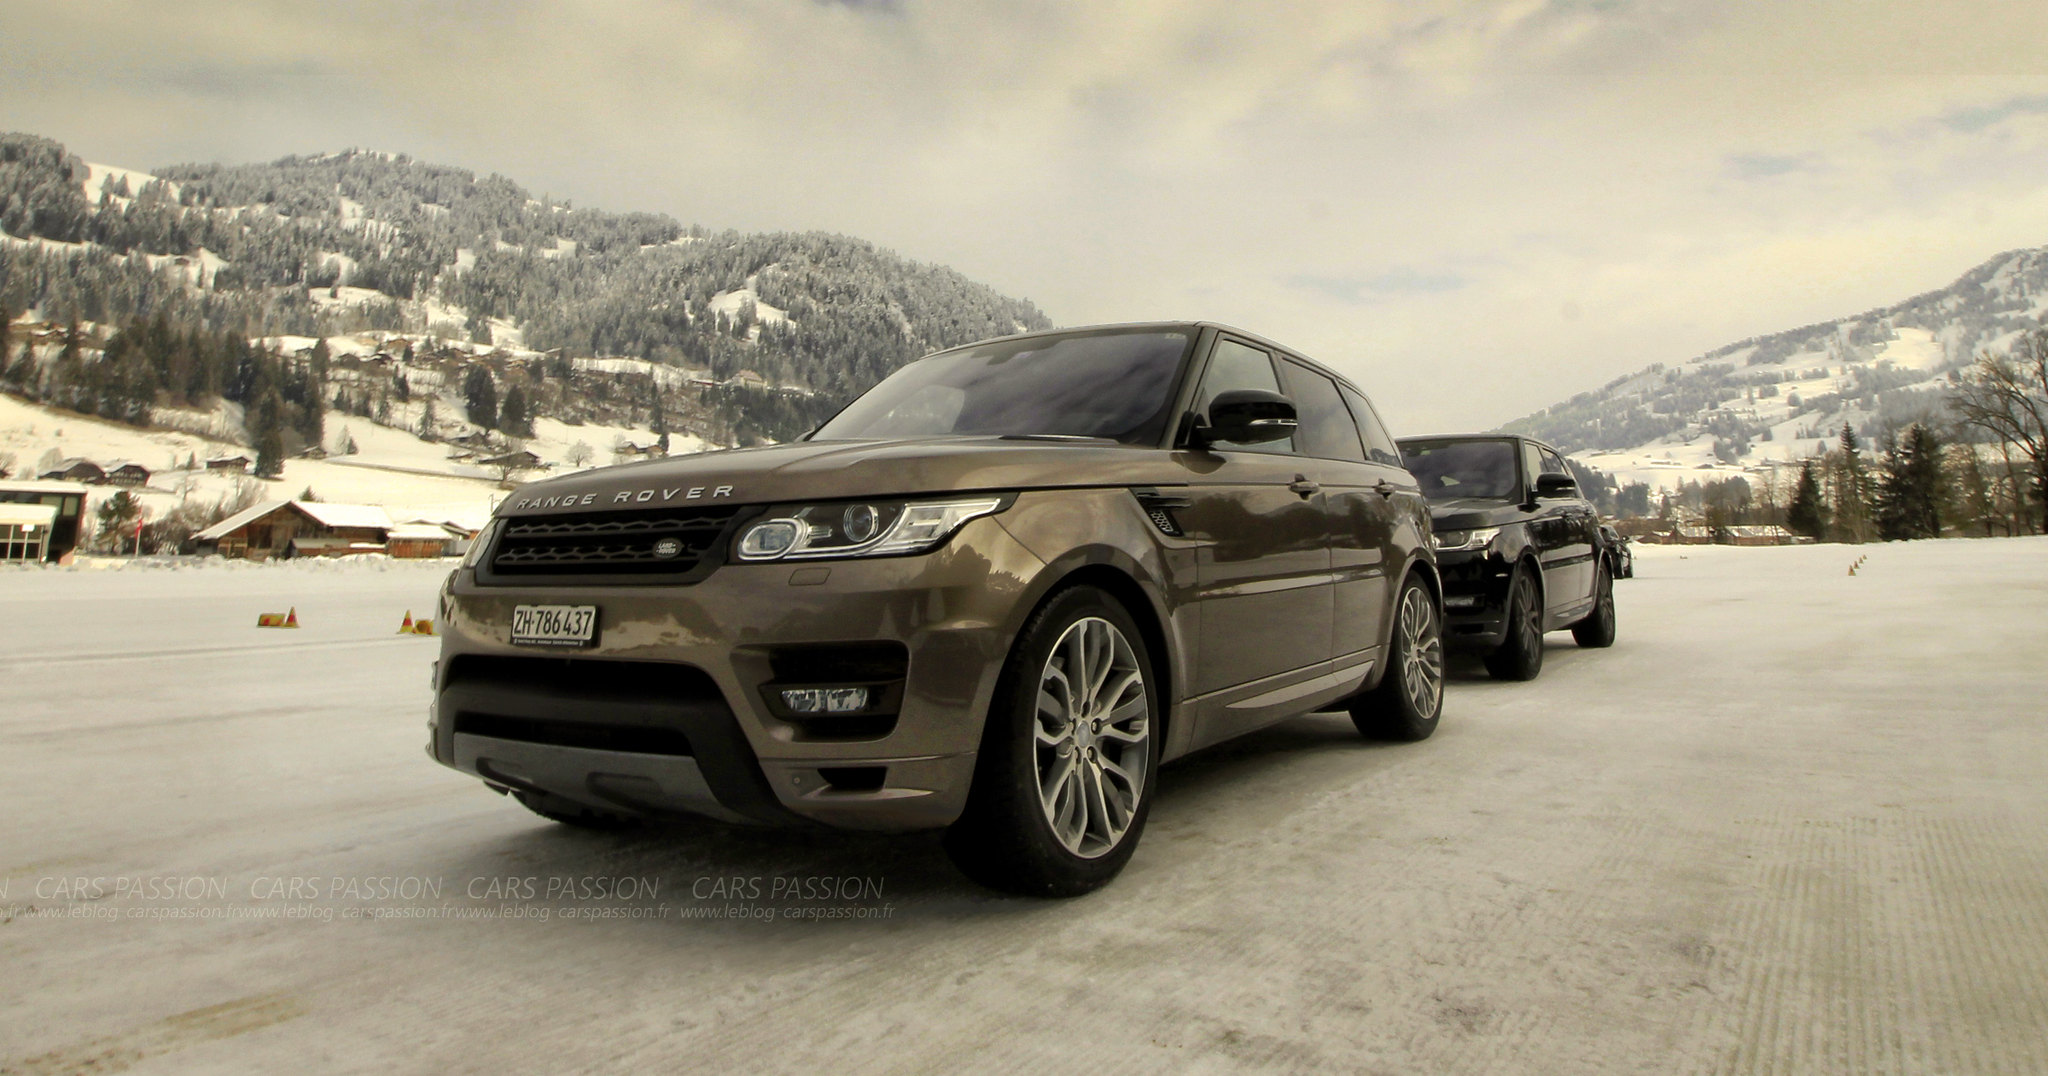 jaguar-land-rover-ice-drivng-esperience-gstaad (19)